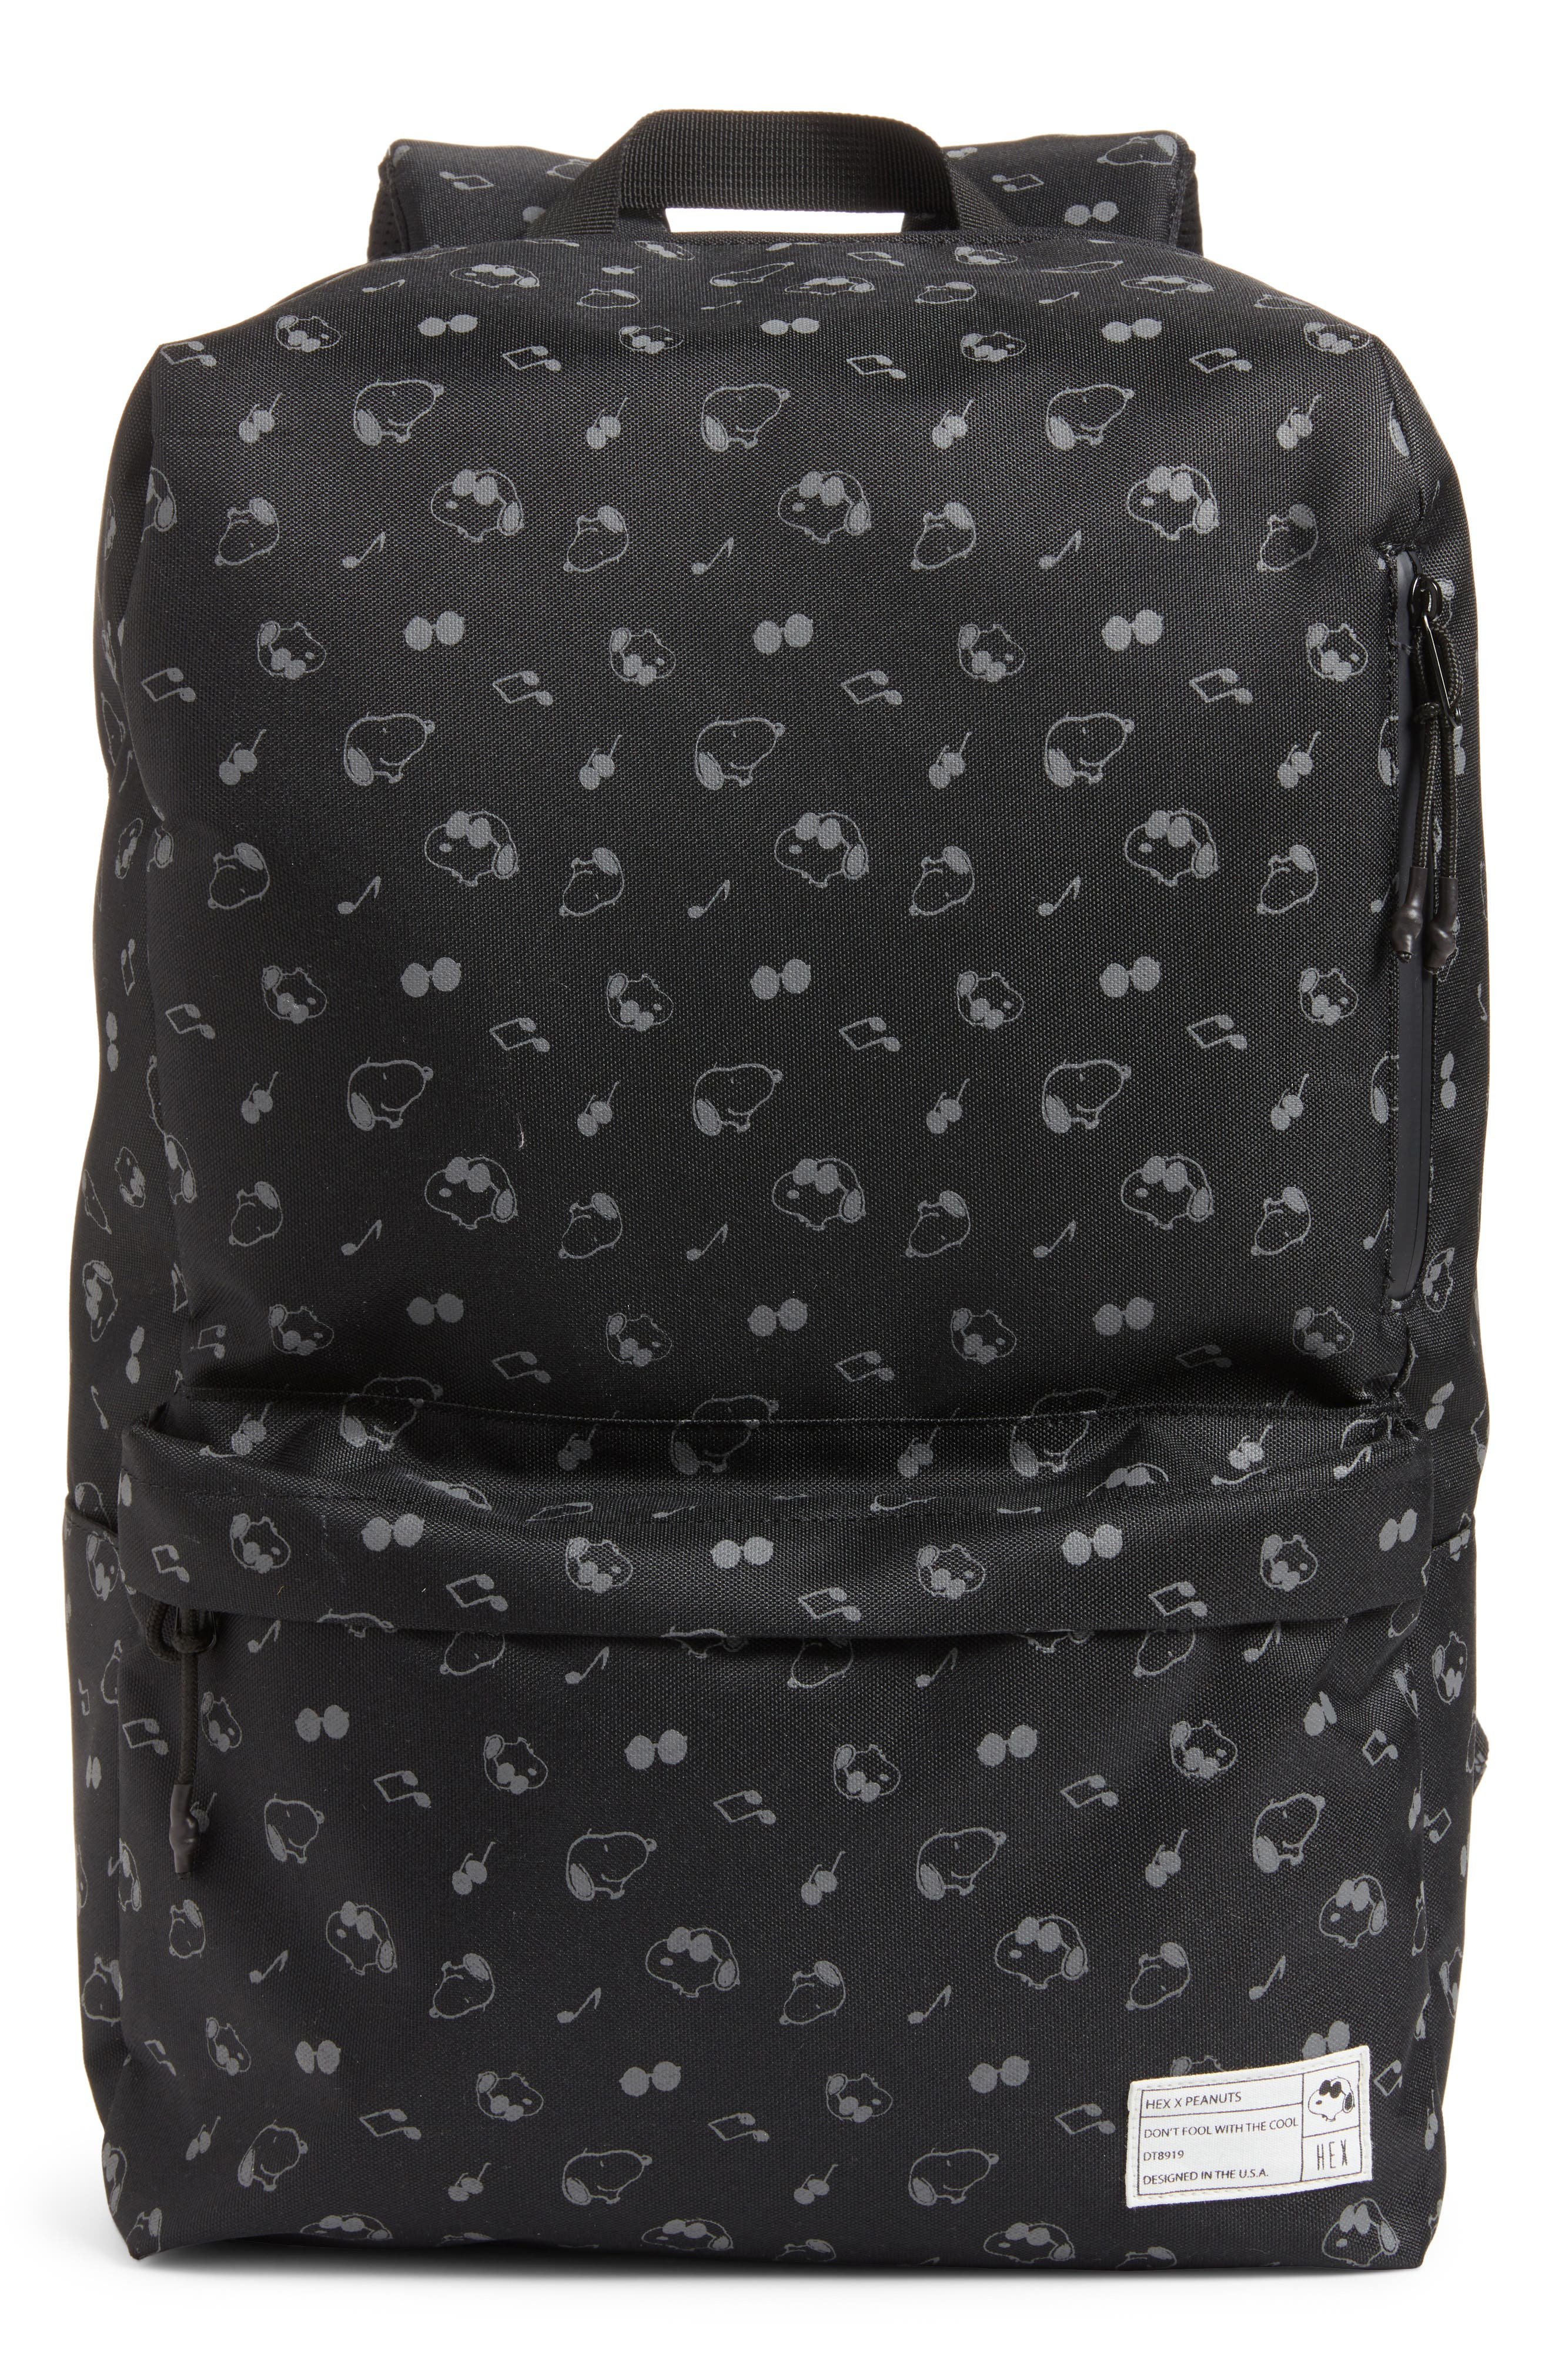 HEX x Peanuts Exile Backpack (Limited Edition) (Nordstrom Exclusive)